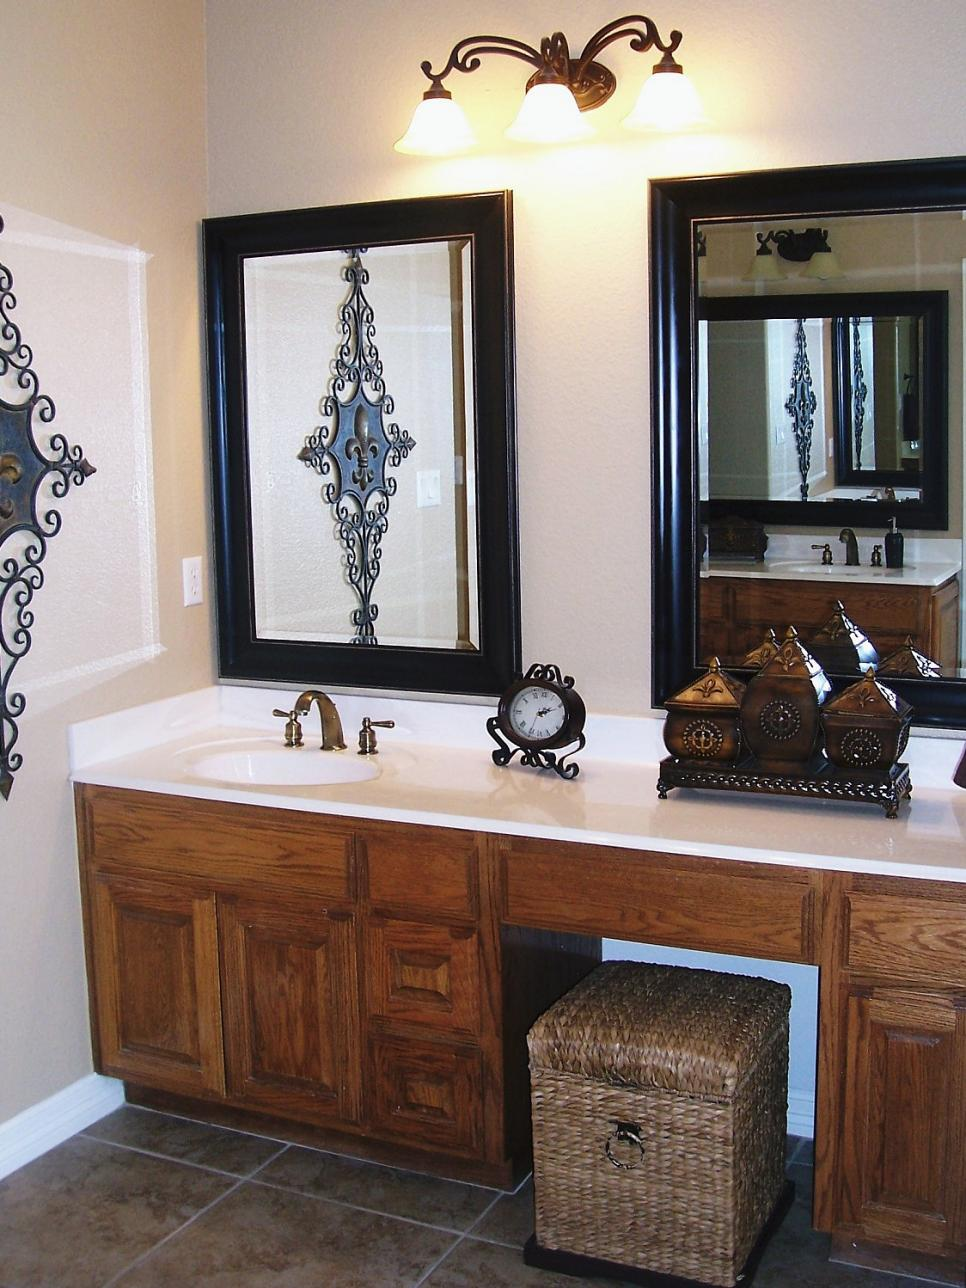 Bathroom mirror ideas double vanity - Bathroom Mirror Ideas Double Vanity 0